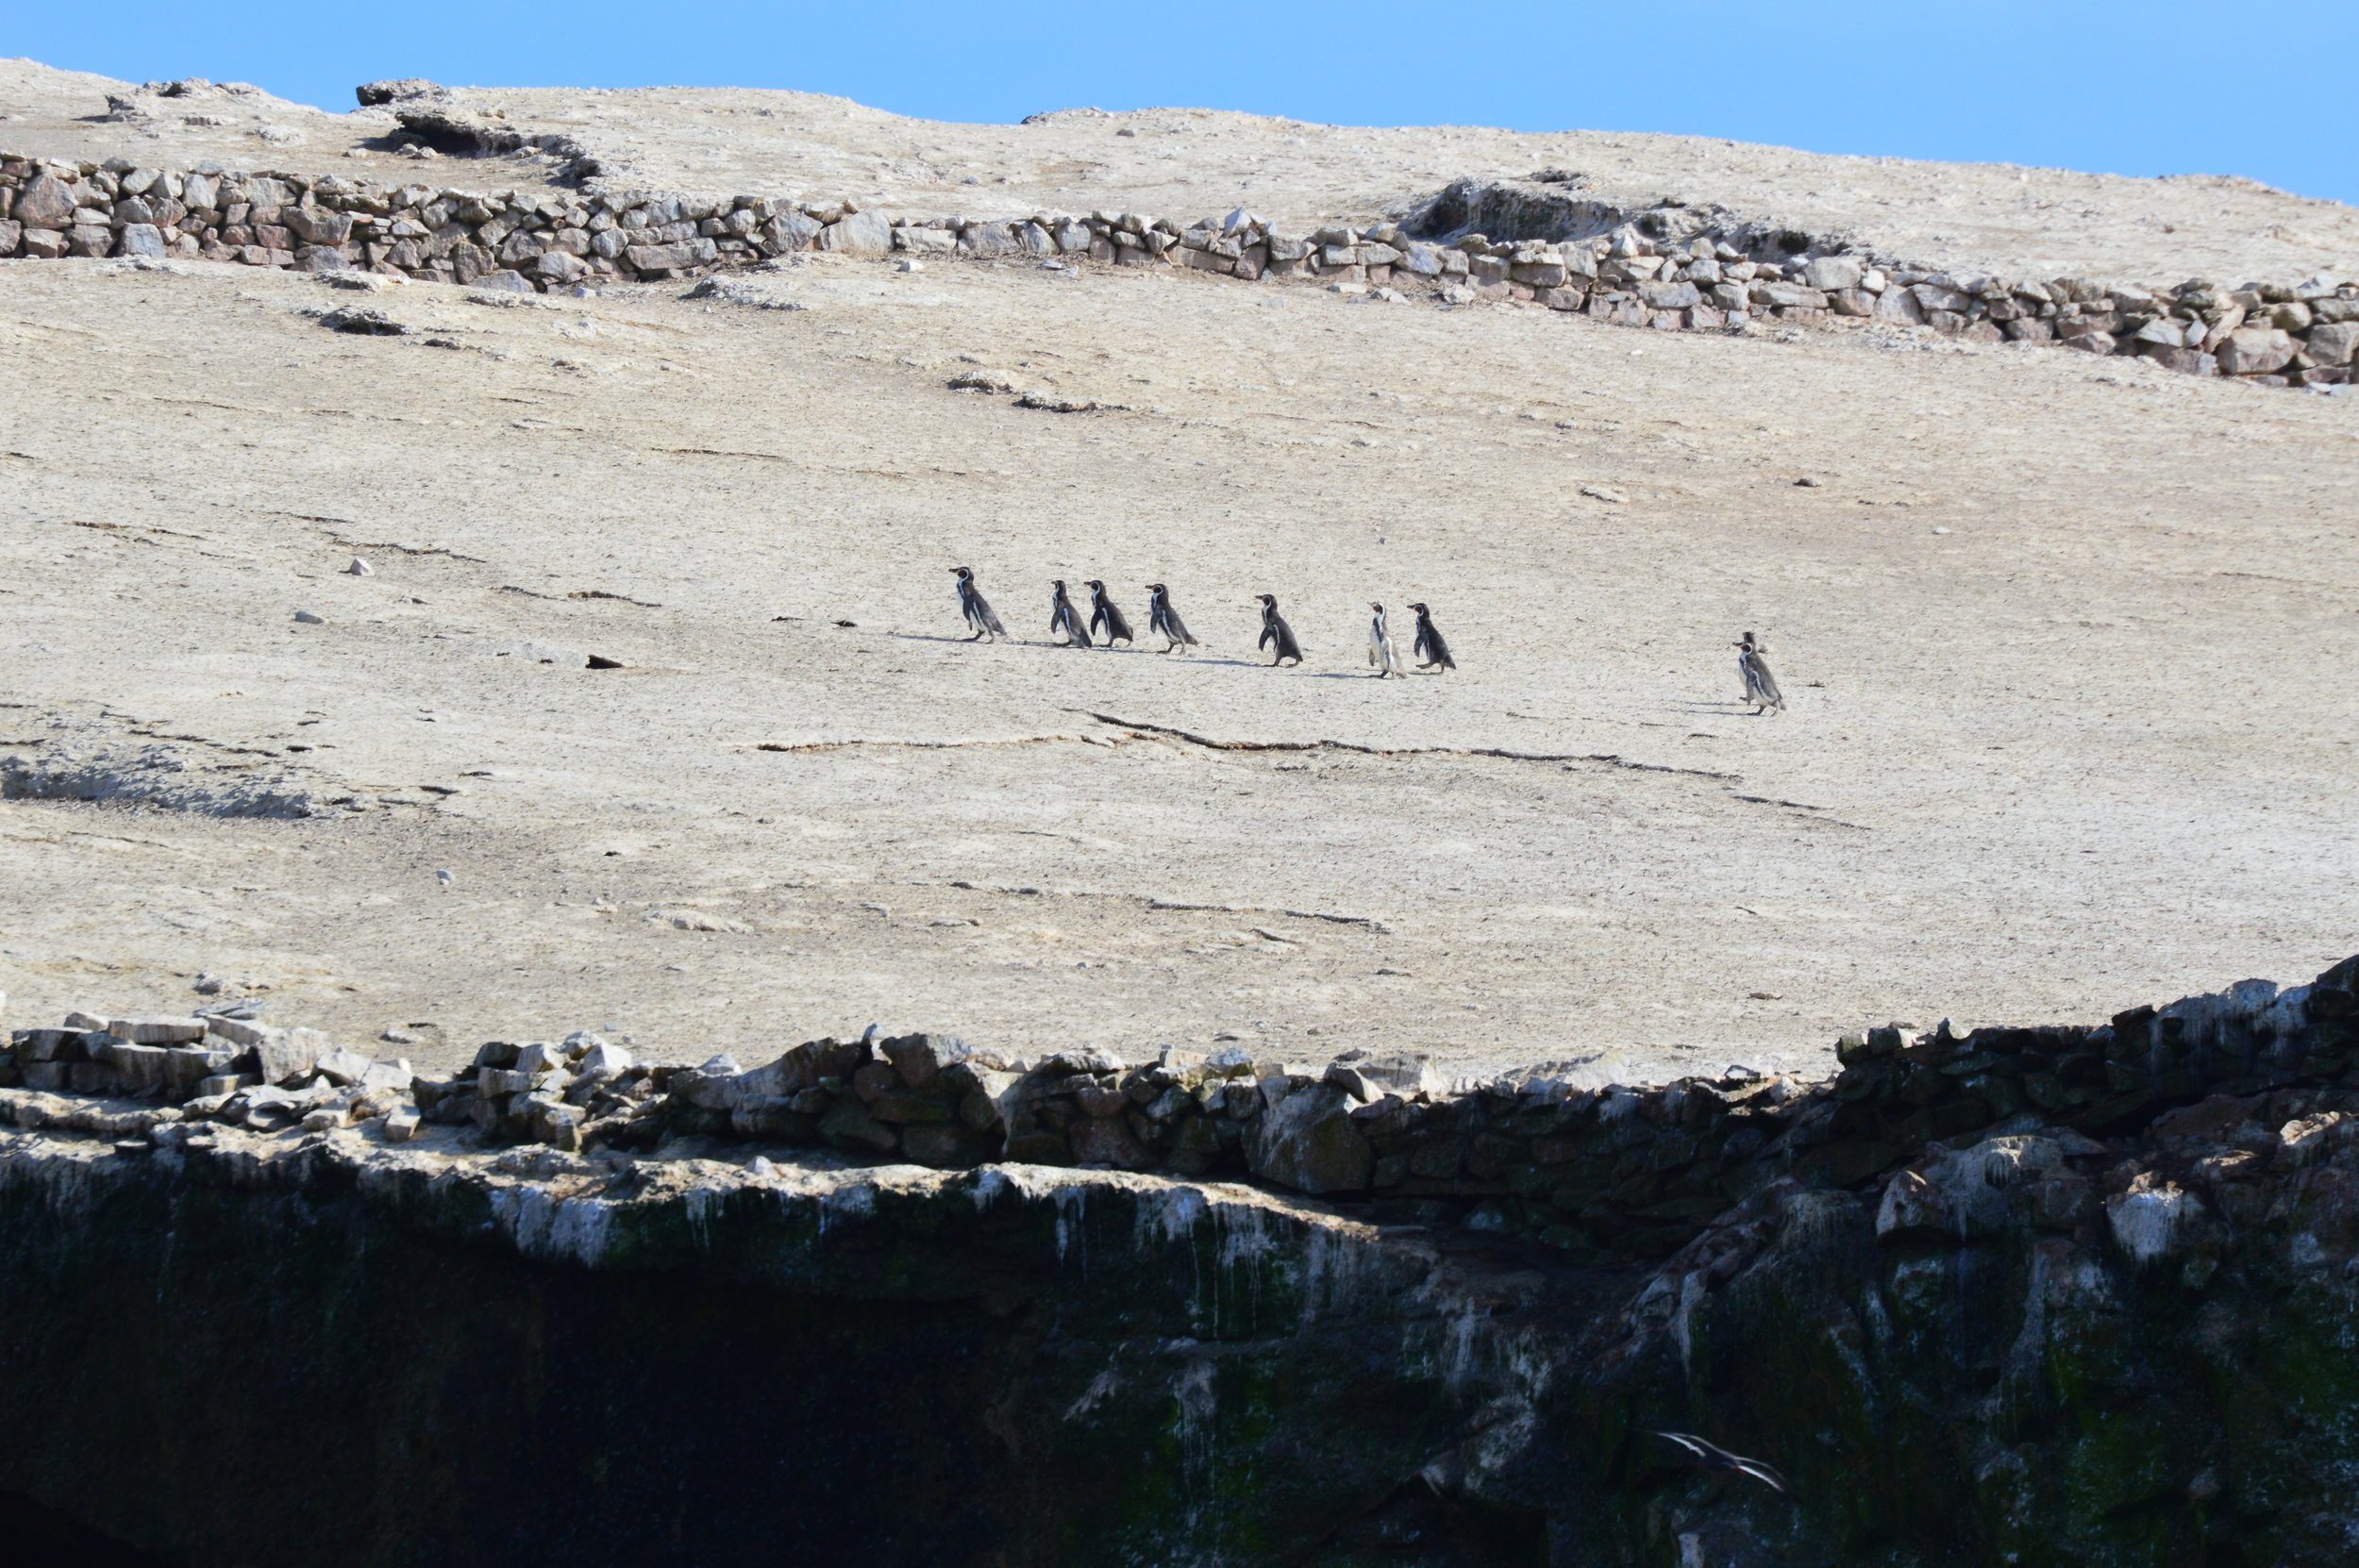 Humboldt penguins—the only penguin native to Peru